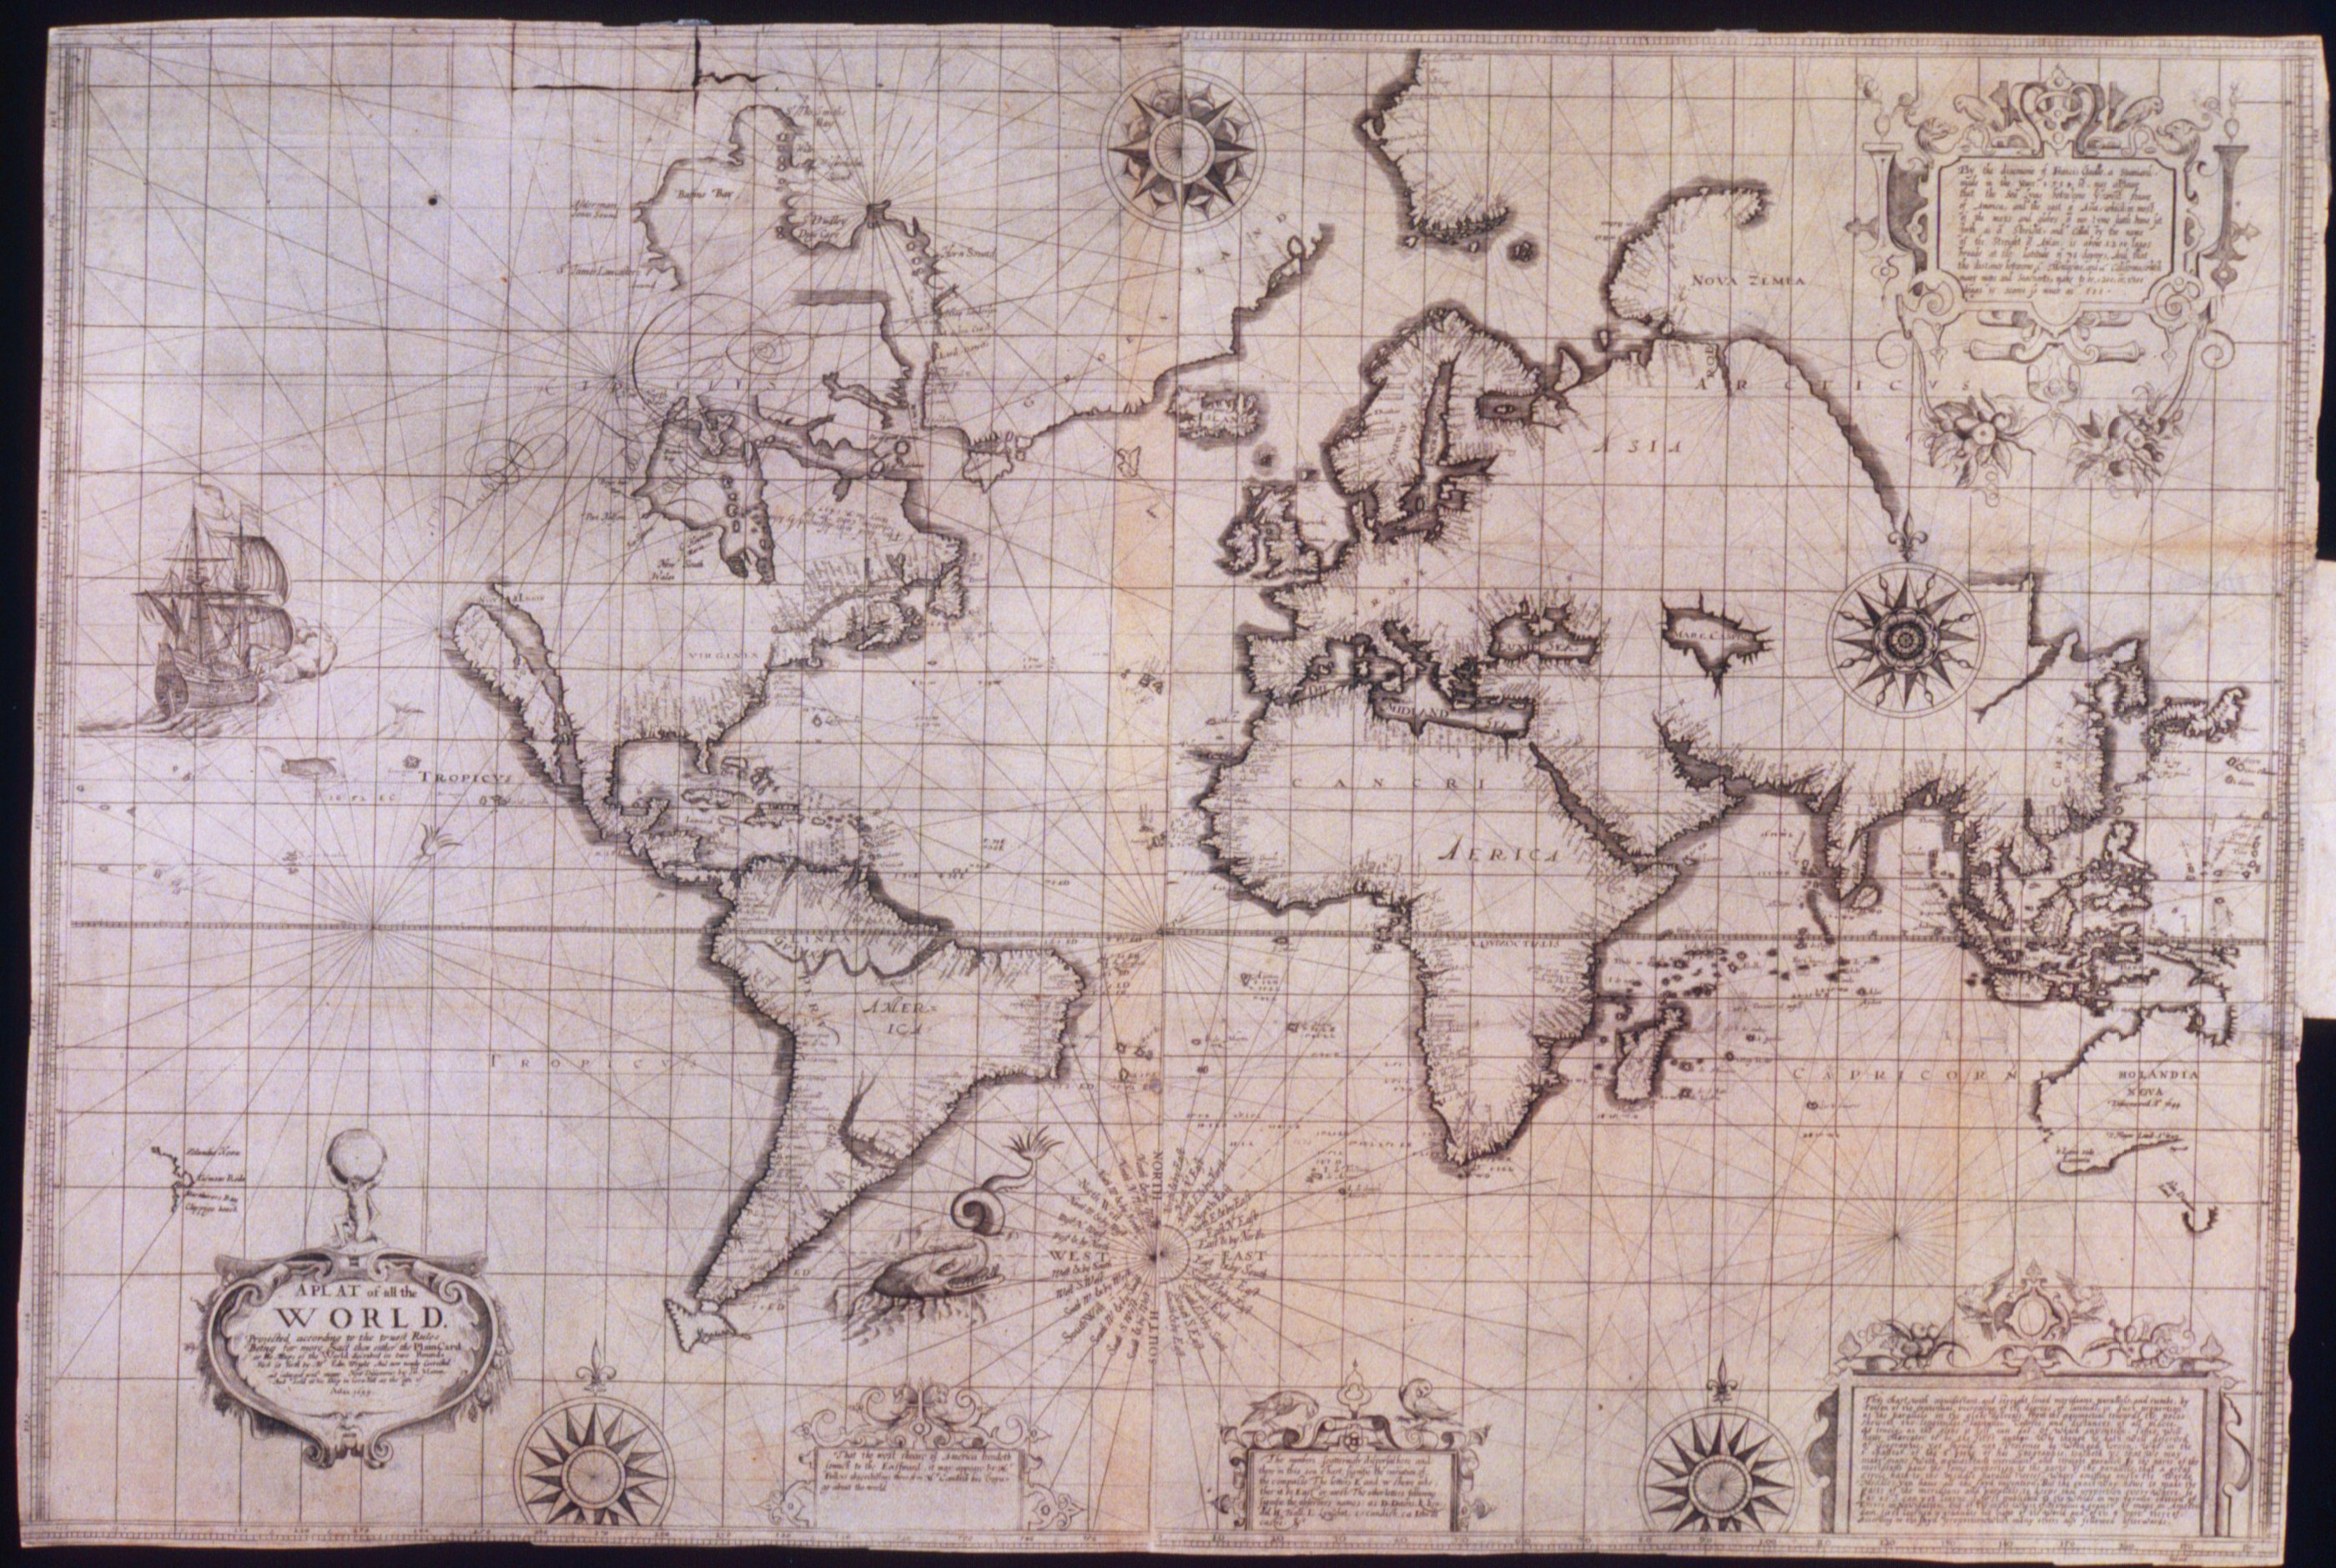 Photo the 1599 map by Edward Wright and Emery Molyneux of England titled Chart of the World and early mapping of Western Australia